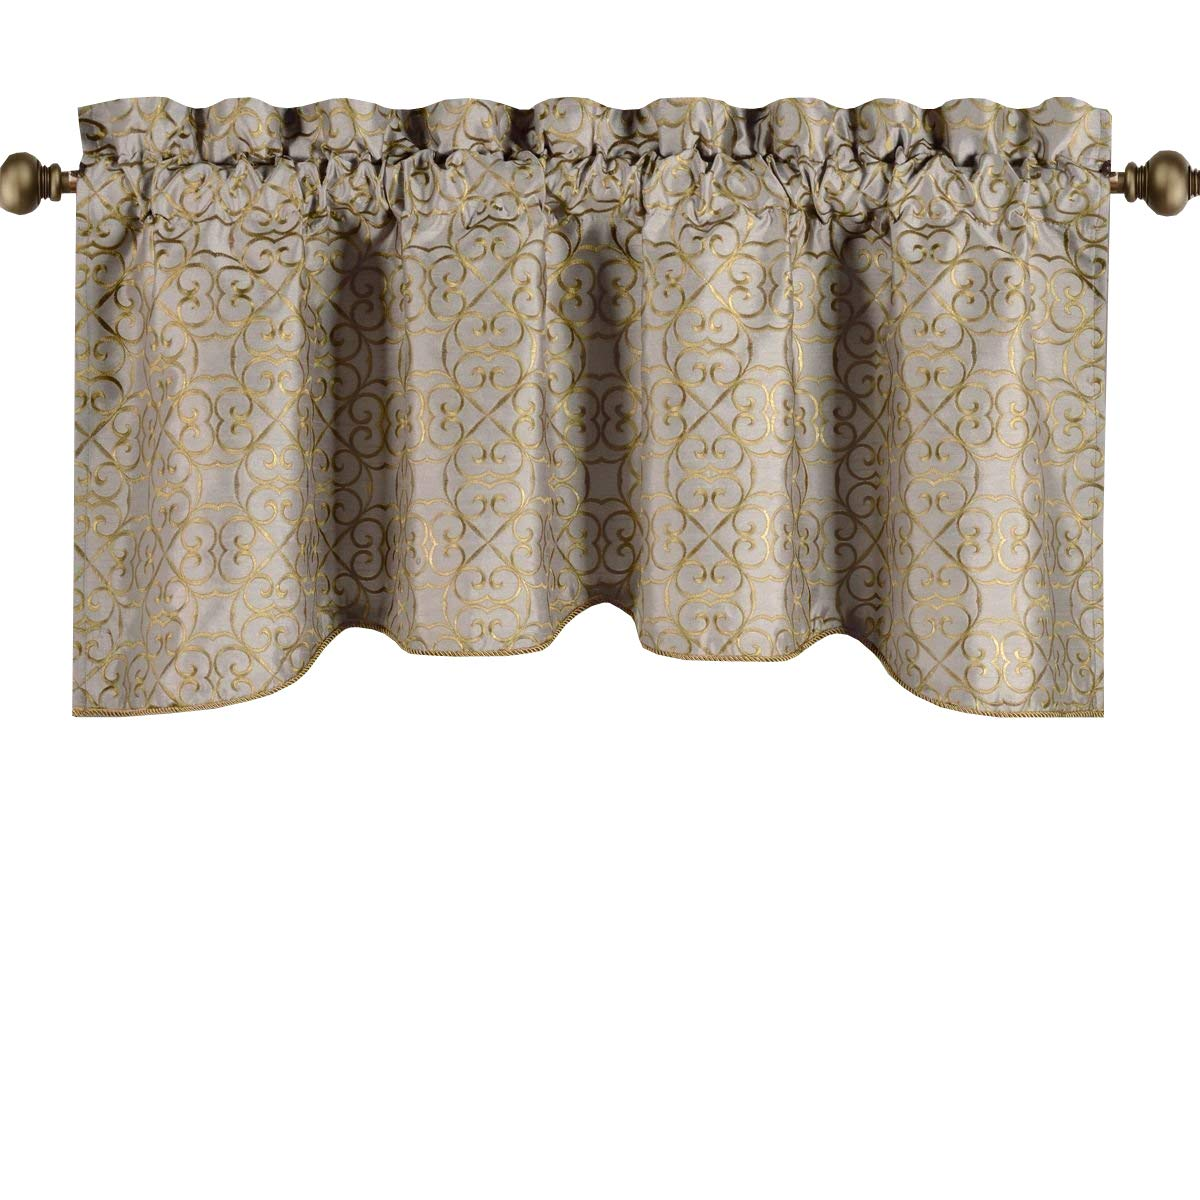 Royal Hotel Halifax Taupe Valance, Scalloped Decorative Rope Embroidered Lined Valance, 50x19 inches